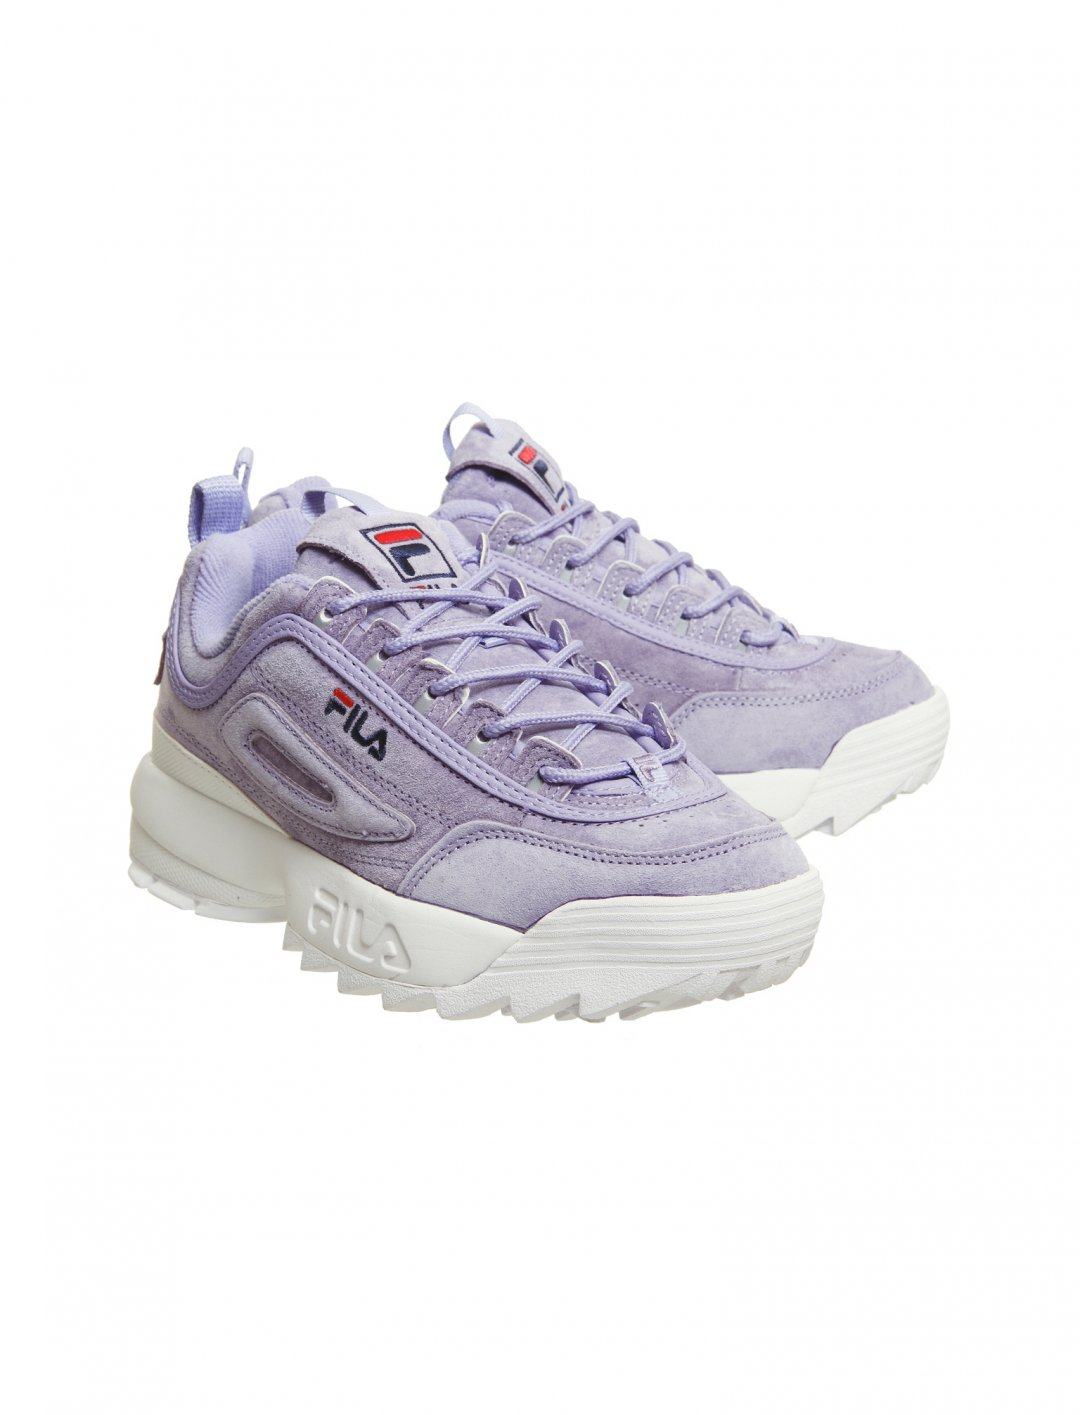 "Imani's Disruptor II Sneakers {""id"":5,""product_section_id"":1,""name"":""Clothing"",""order"":5} Fila"